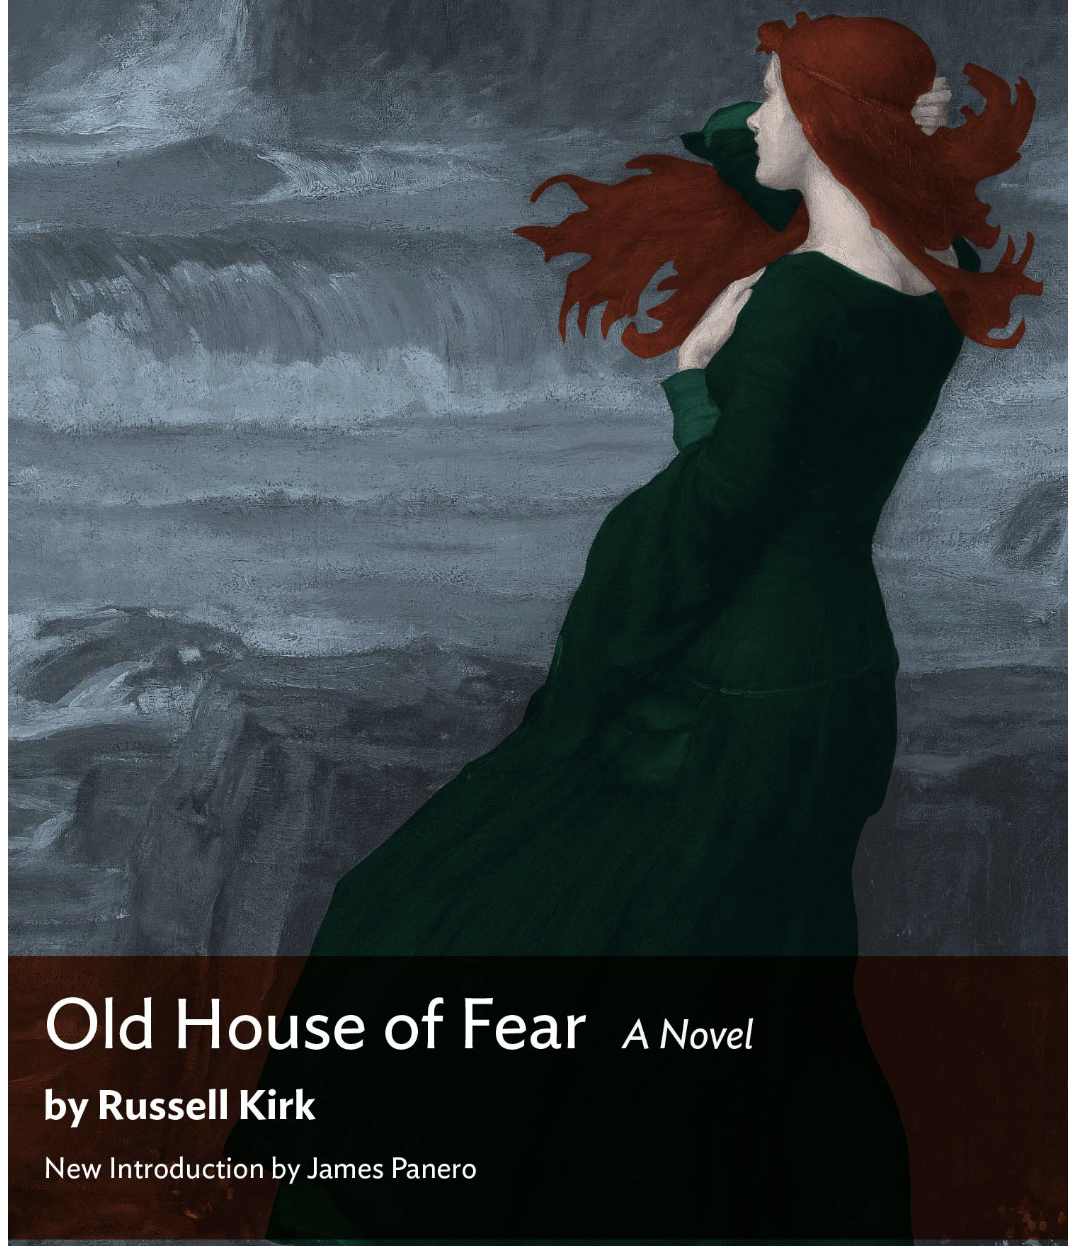 OLD HOUSE OF FEAR: A Novel by Russell Kirk    New introduction by James Panero